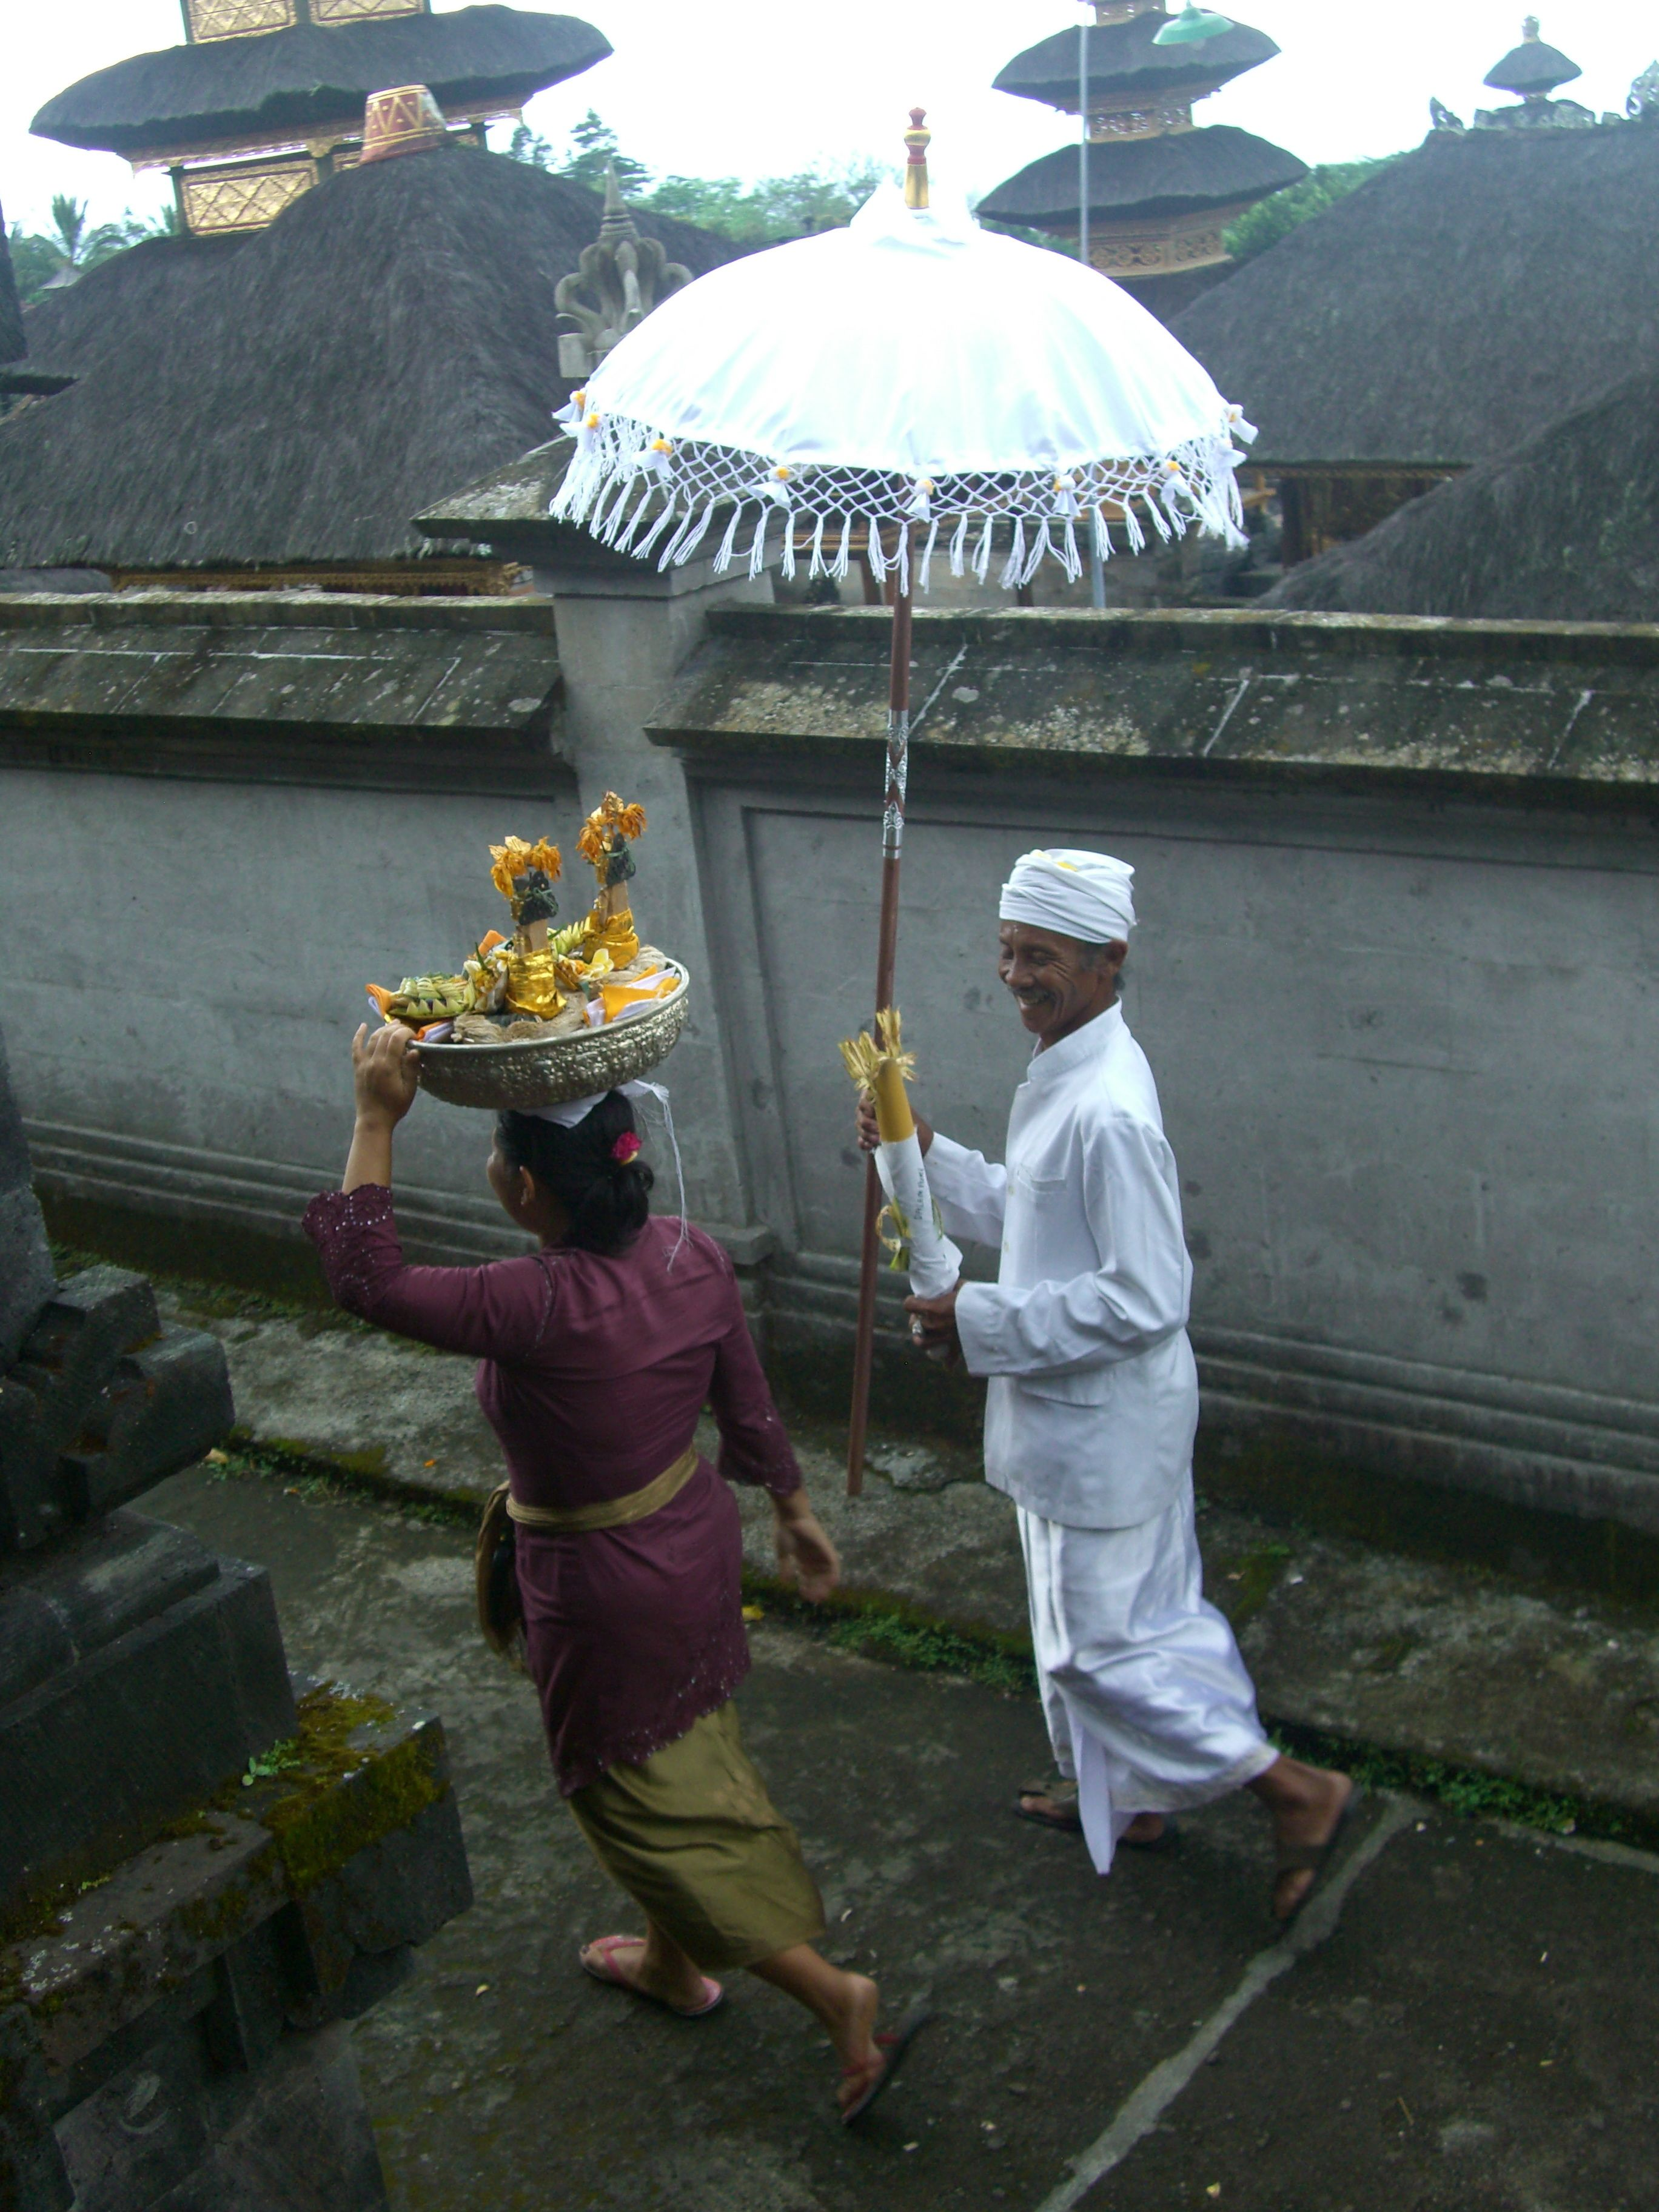 Took this photo at a temple ceremony in Bali.... wonderful culture